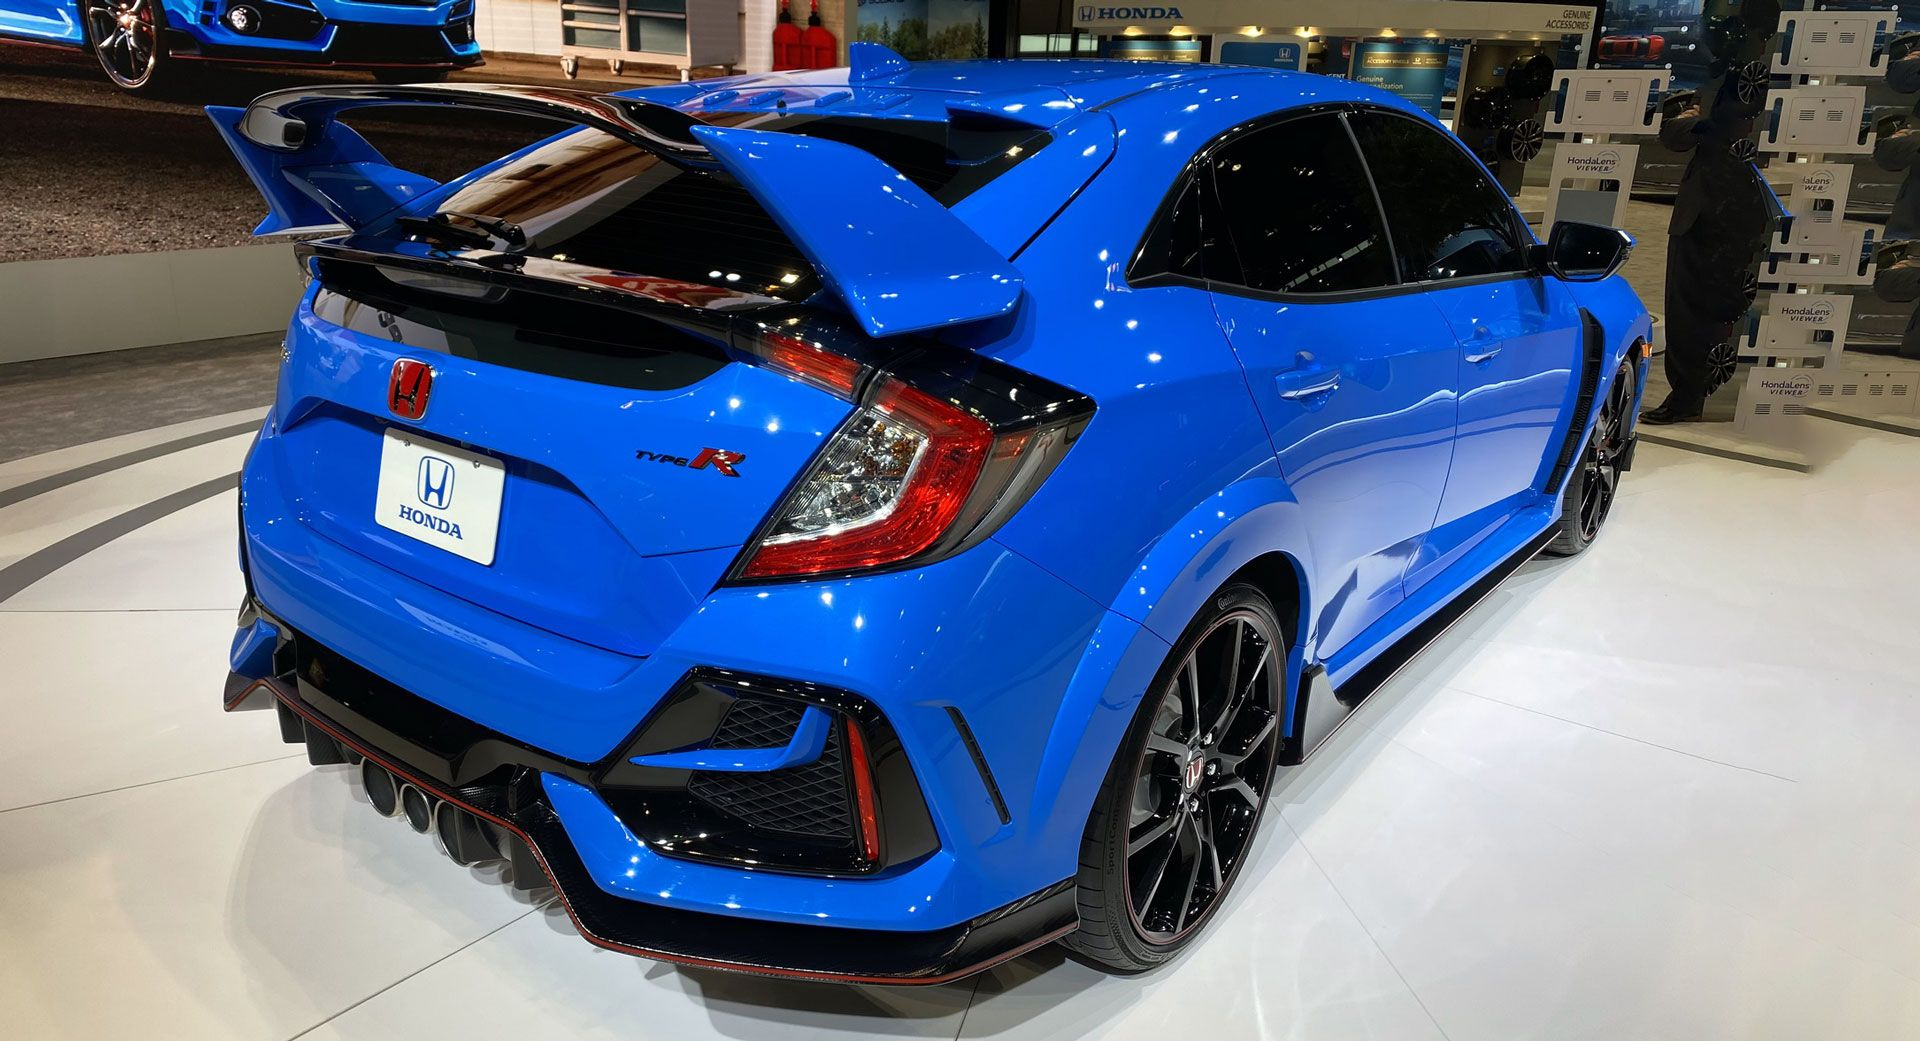 2020 Honda Civic Type R Arrives In America With Minor Styling Chassis Tweaks And A Boost Blue Color In 2020 Honda Civic Type R Honda Civic Honda Civic Hatchback